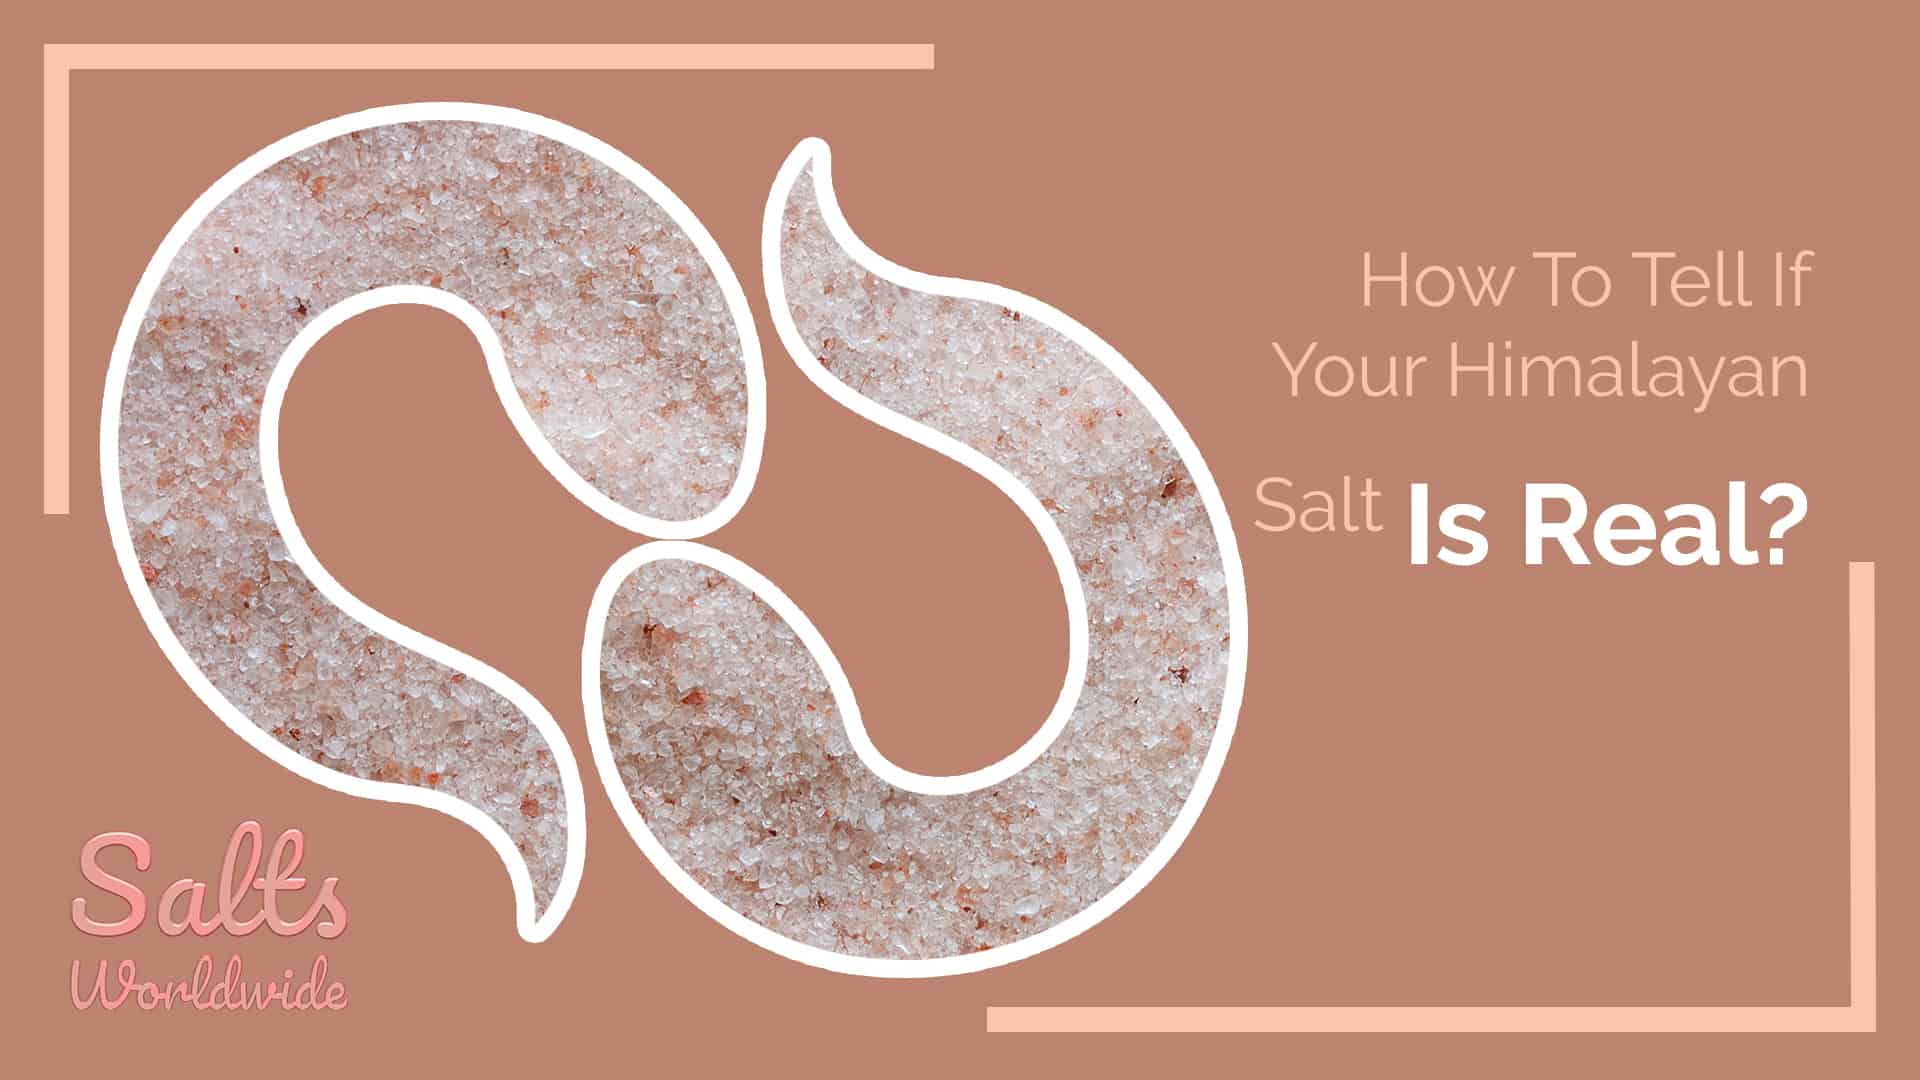 How To Tell If Your Himalayan Salt Is Real - featured image